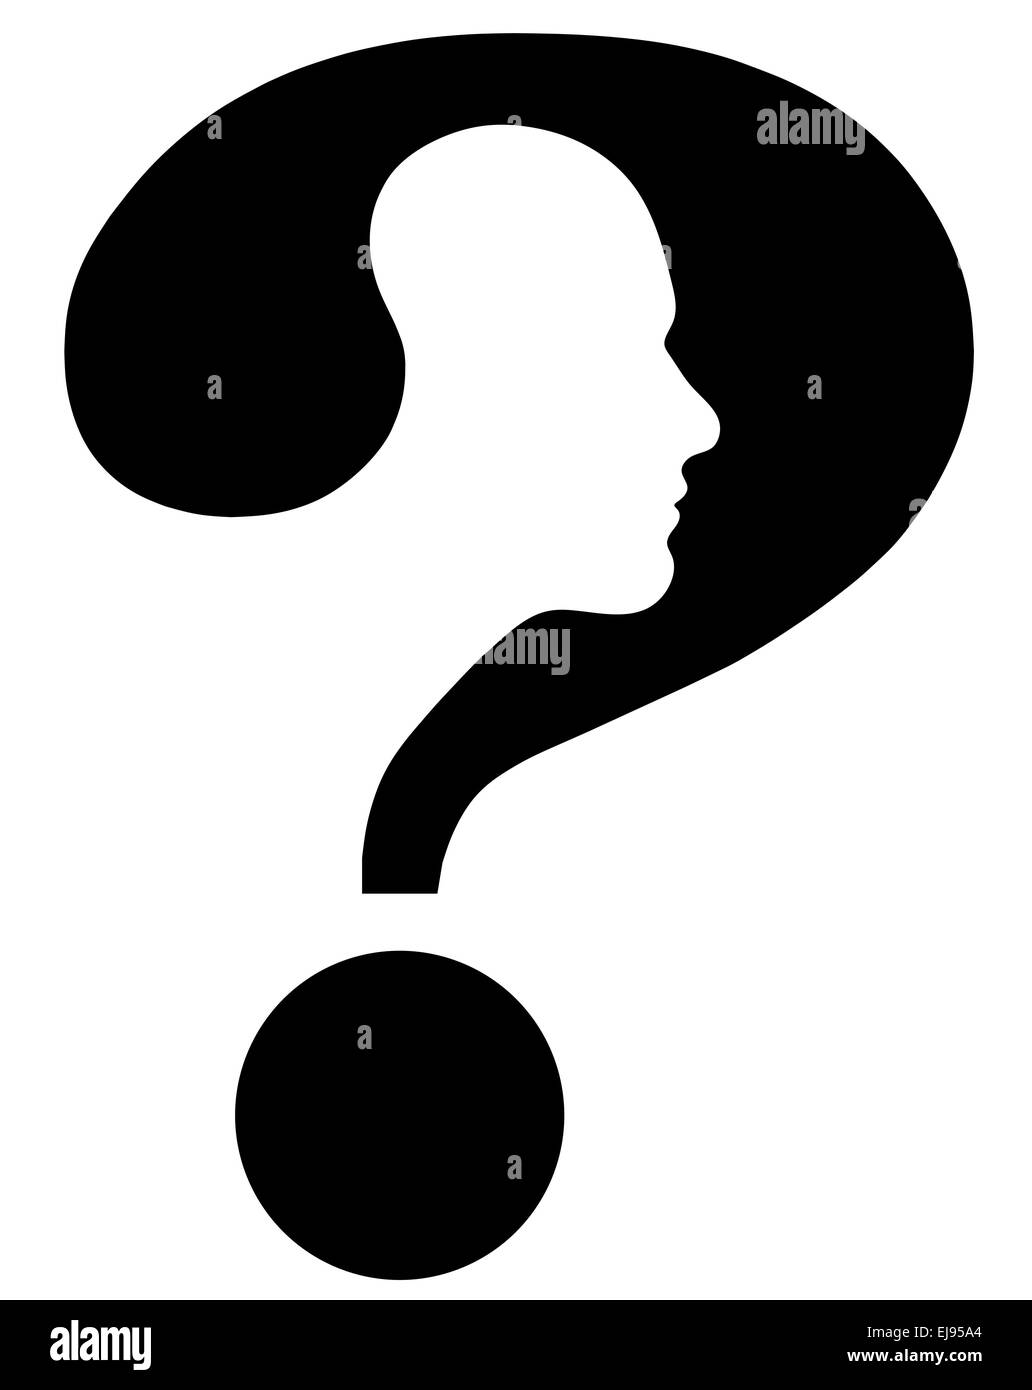 the question mark head - Stock Image